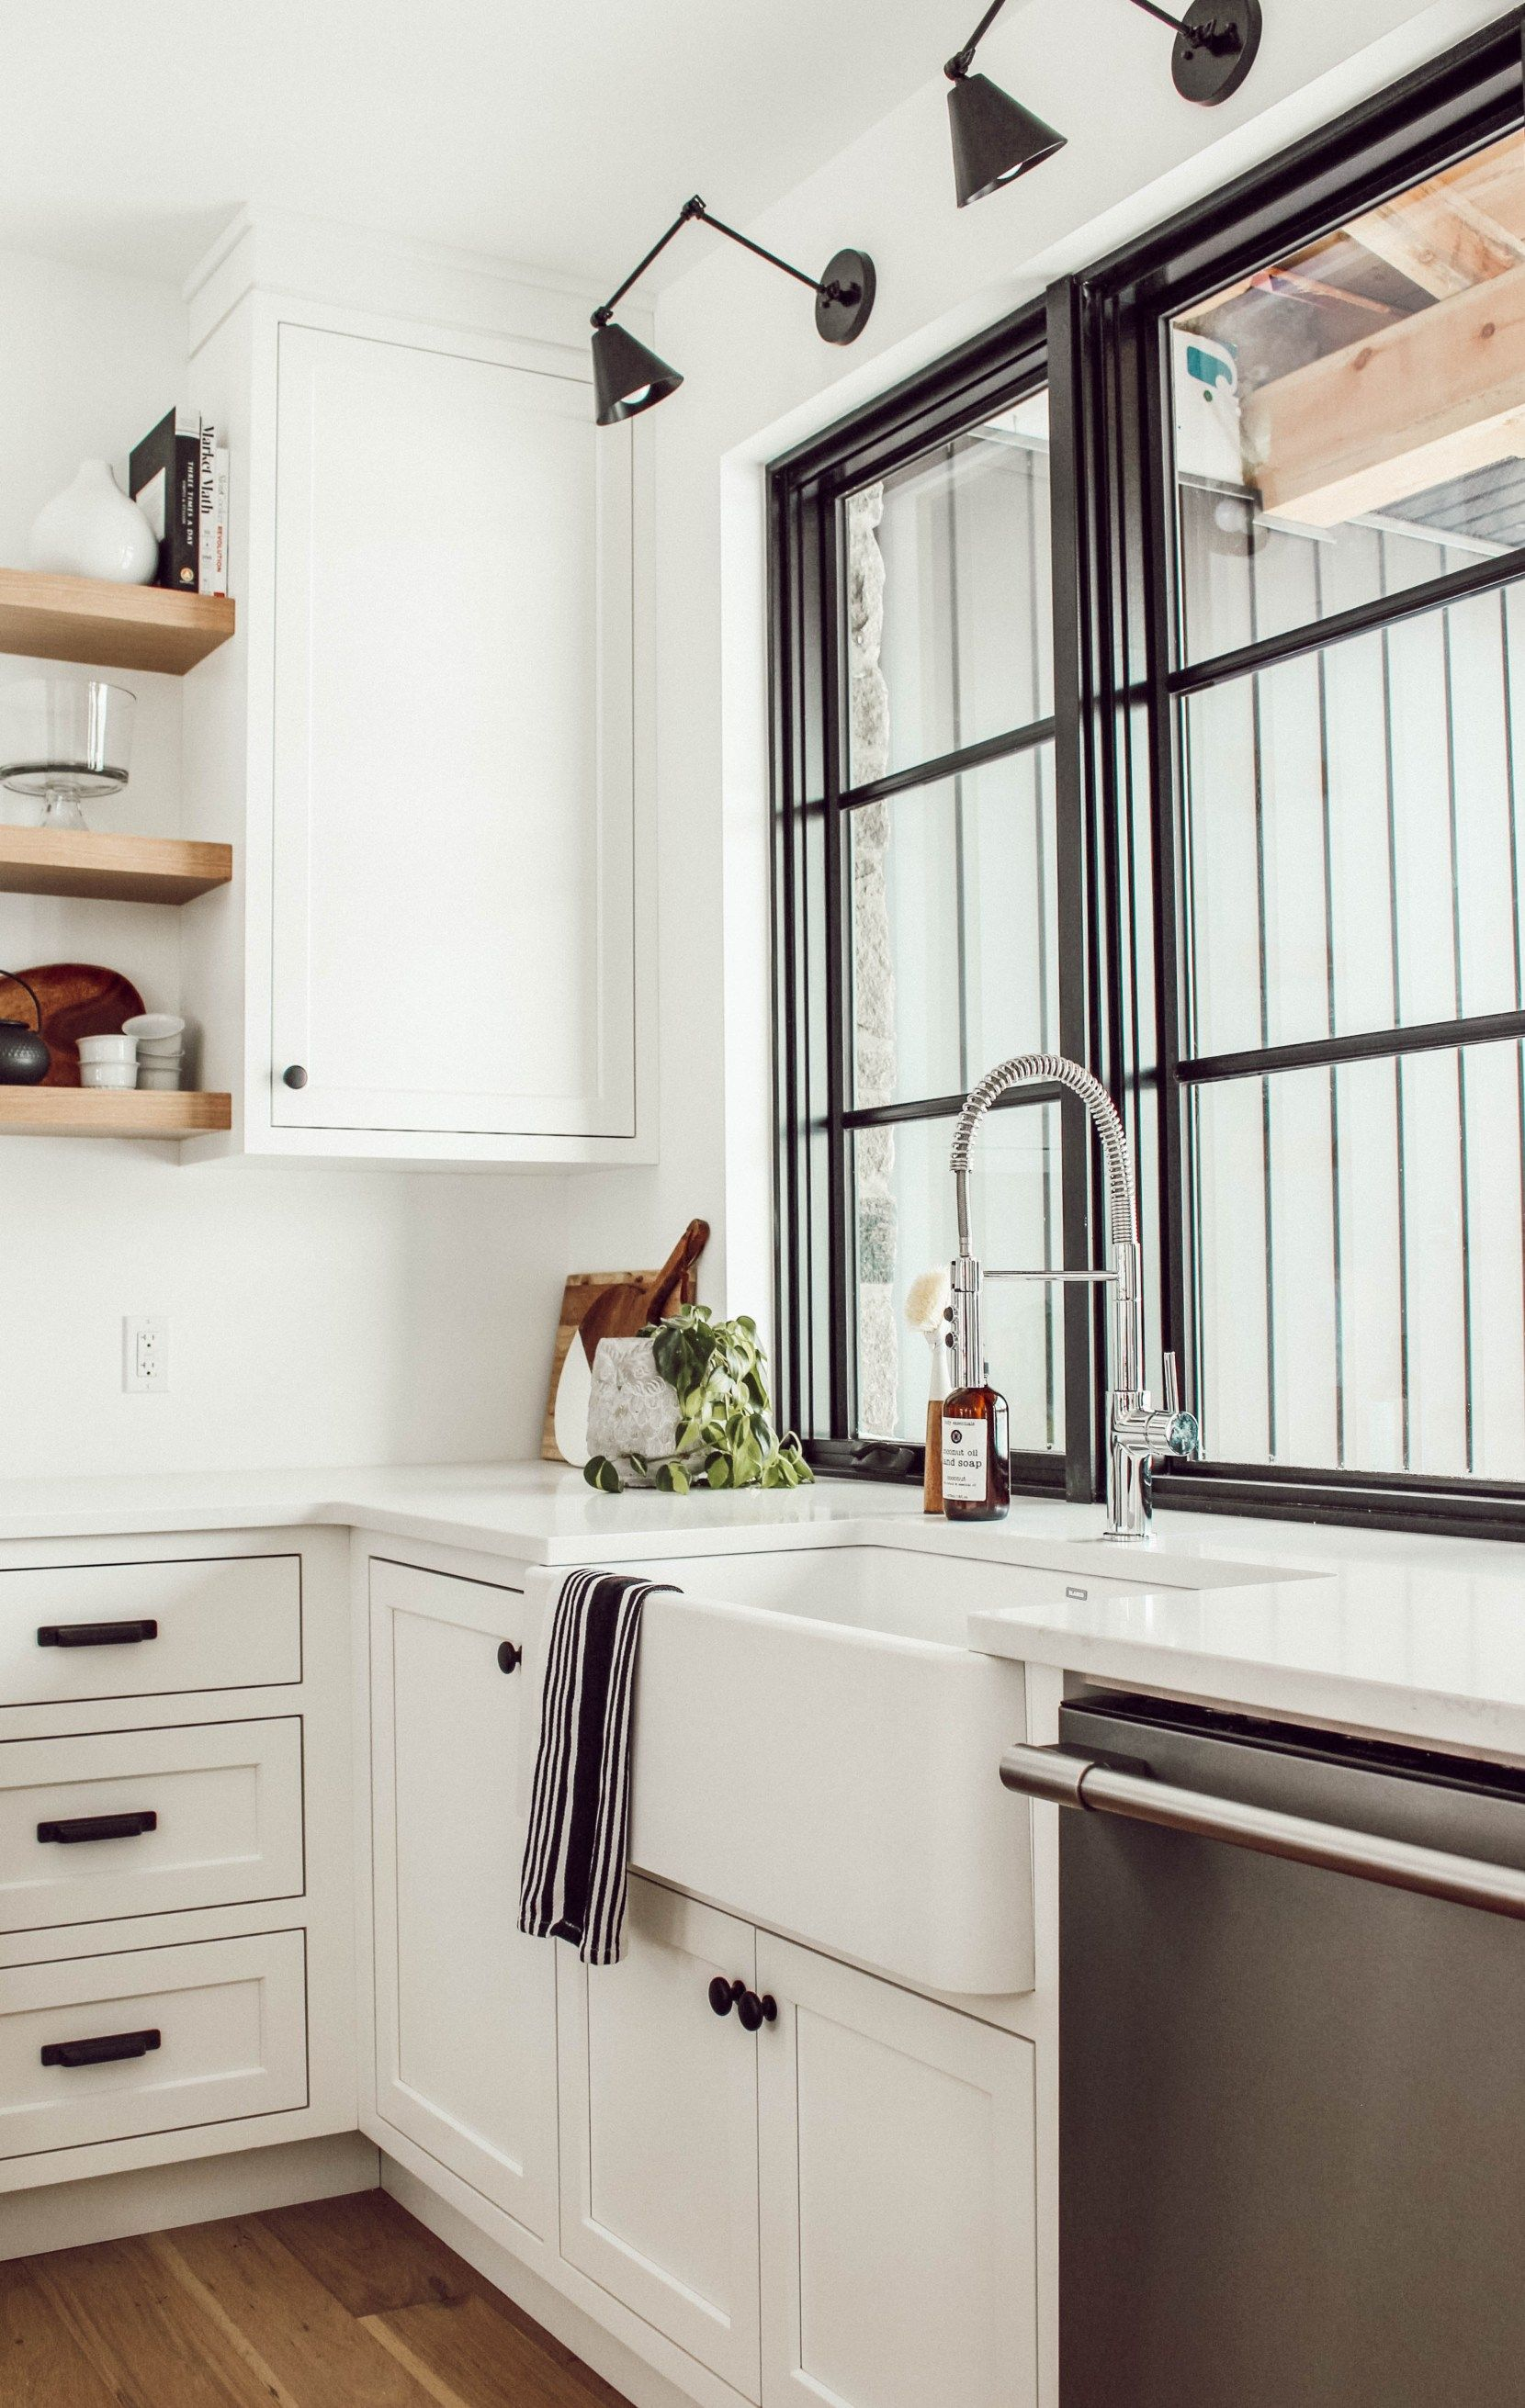 a blanco sink for our kitchen simple kitchen design eclectic kitchen kitchen remodel on kitchen ideas simple id=91903